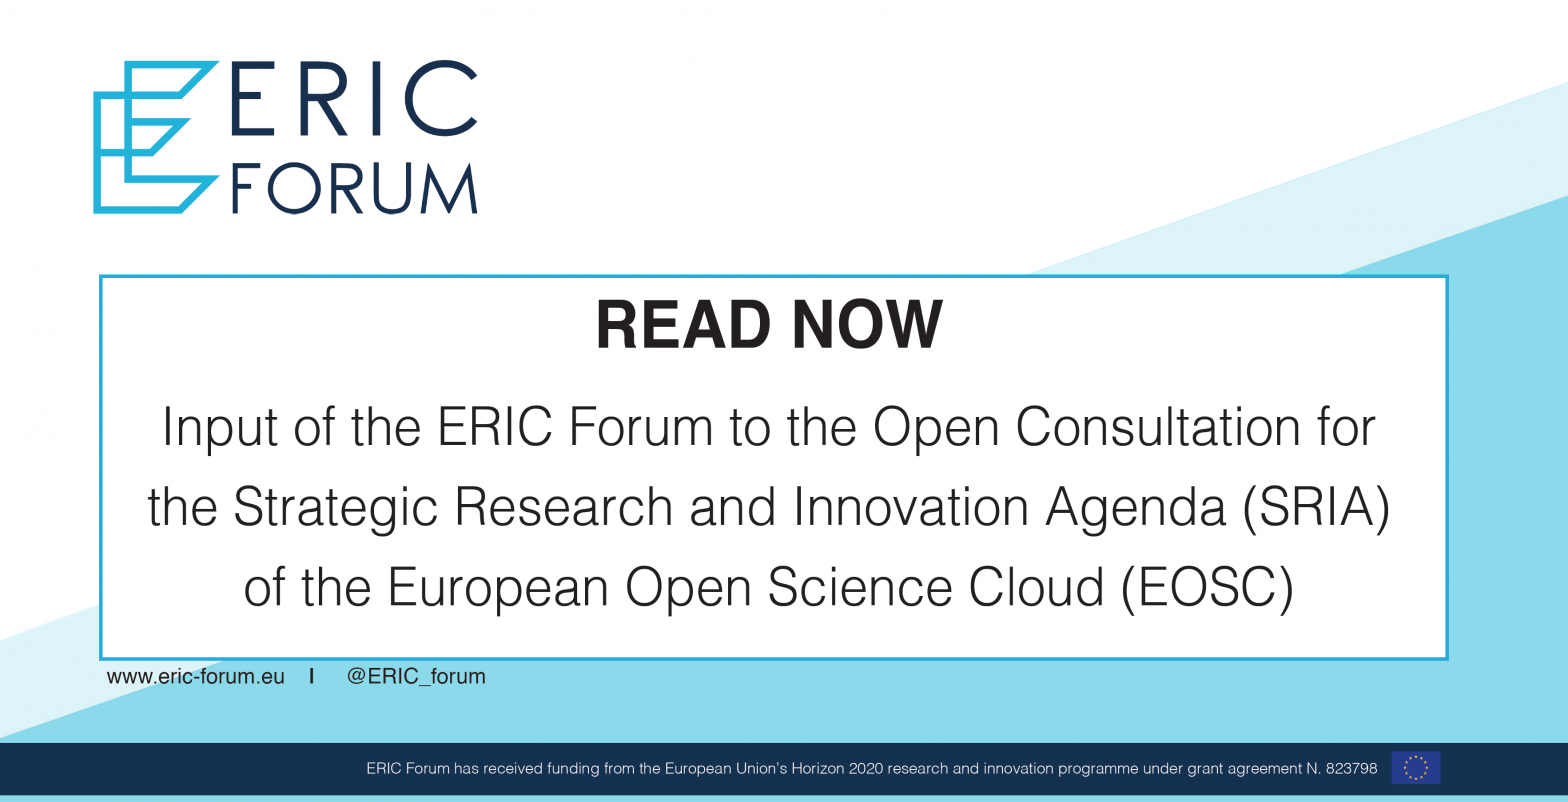 Input of the ERIC Forum to the Open Consultation for the Strategic Research and Innovation Agenda (SRIA) of the European Open Science Cloud (EOSC)